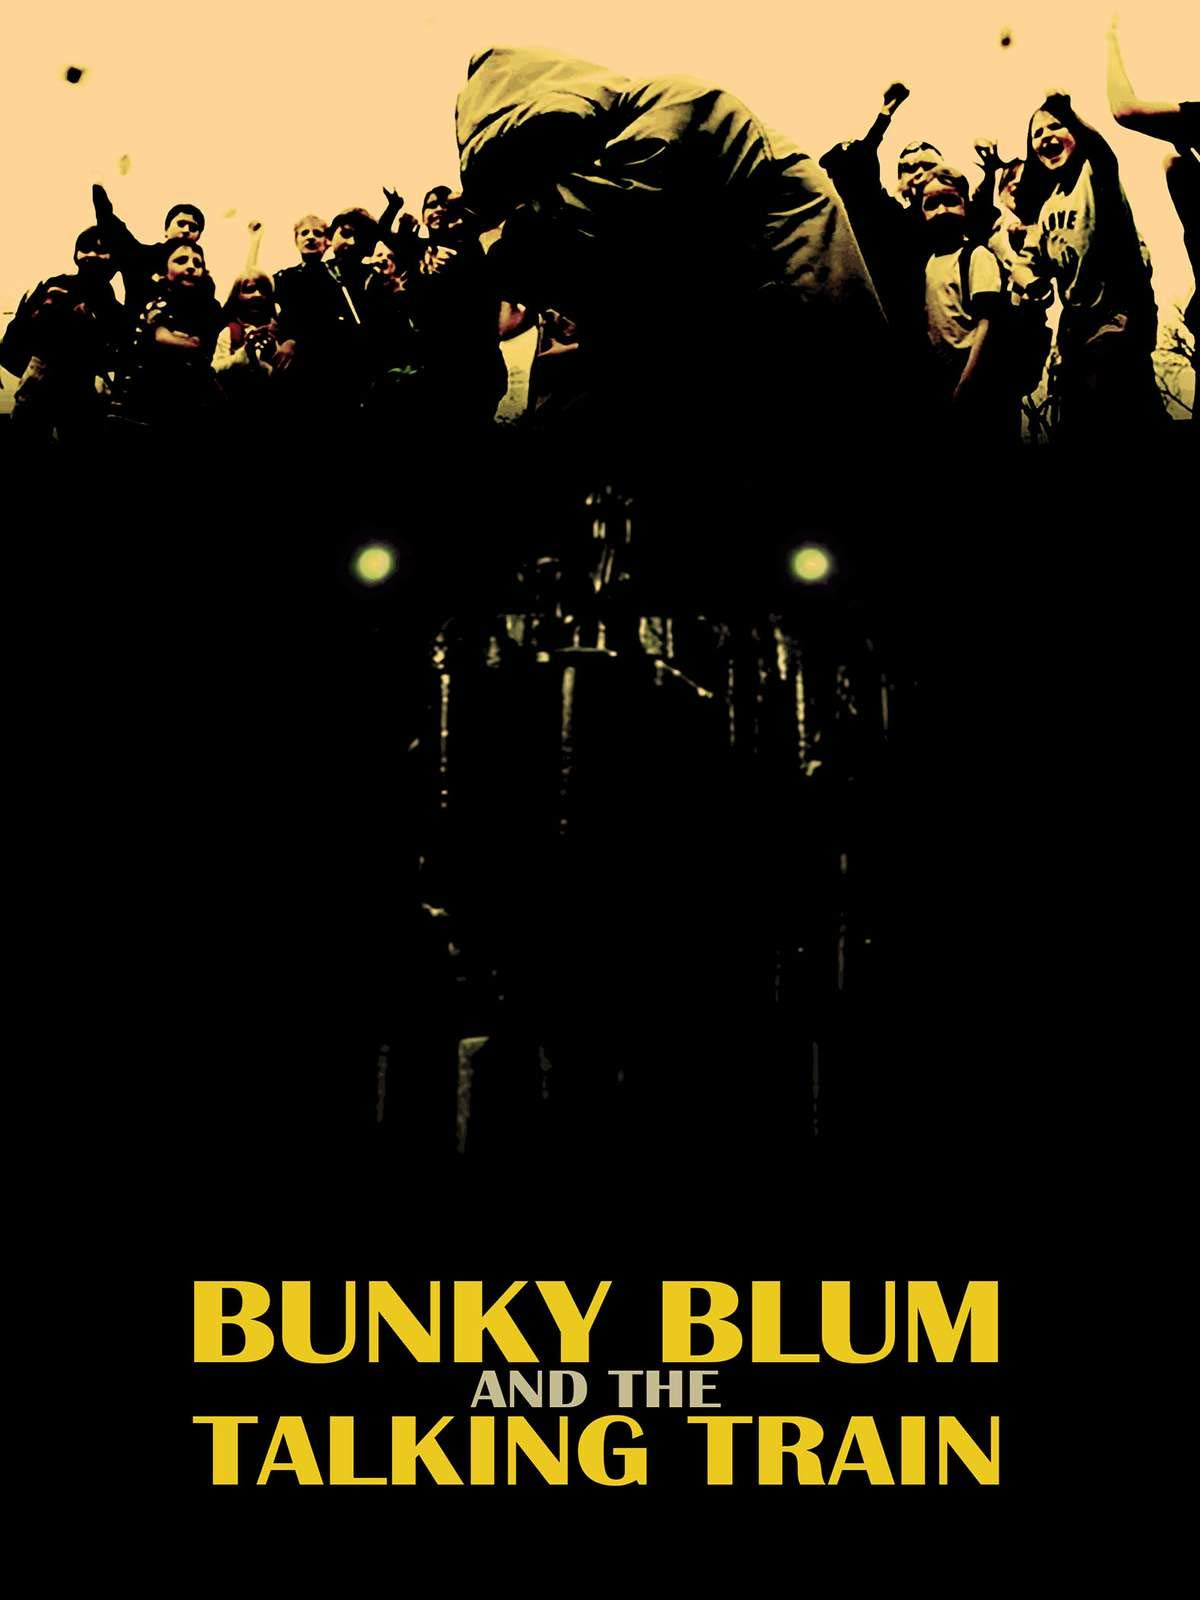 Bunky Blum and the Talking Train